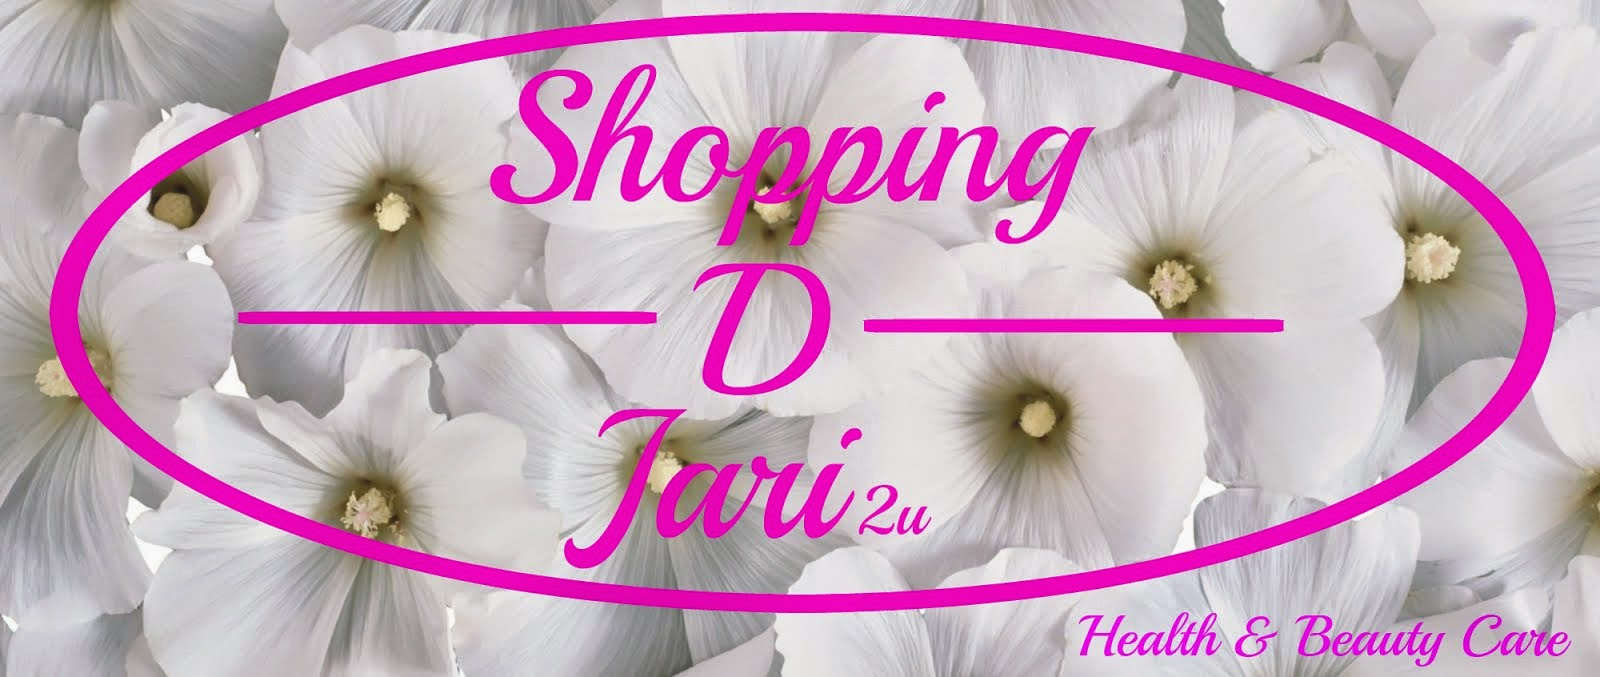 ShoppingDjari2u : Beauty&Healthcare